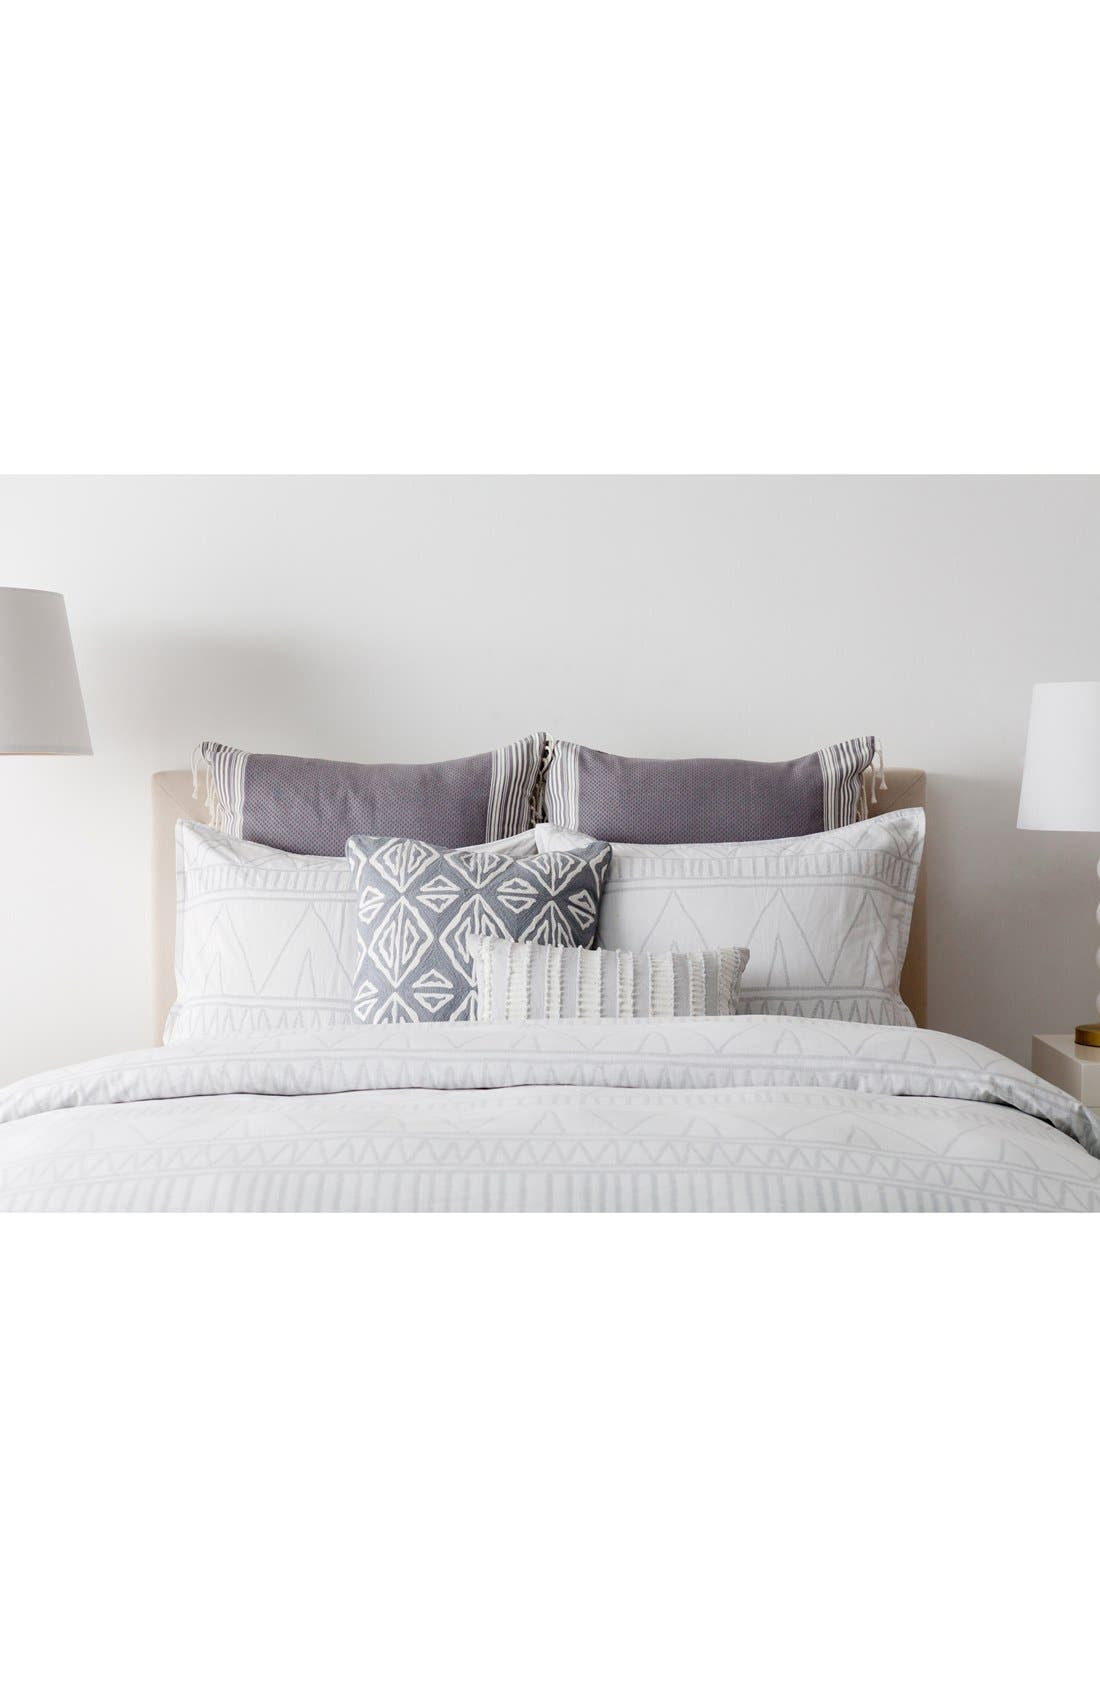 'Moroccan Geo' Crewel Embroidered Pillow,                             Alternate thumbnail 7, color,                             Grey